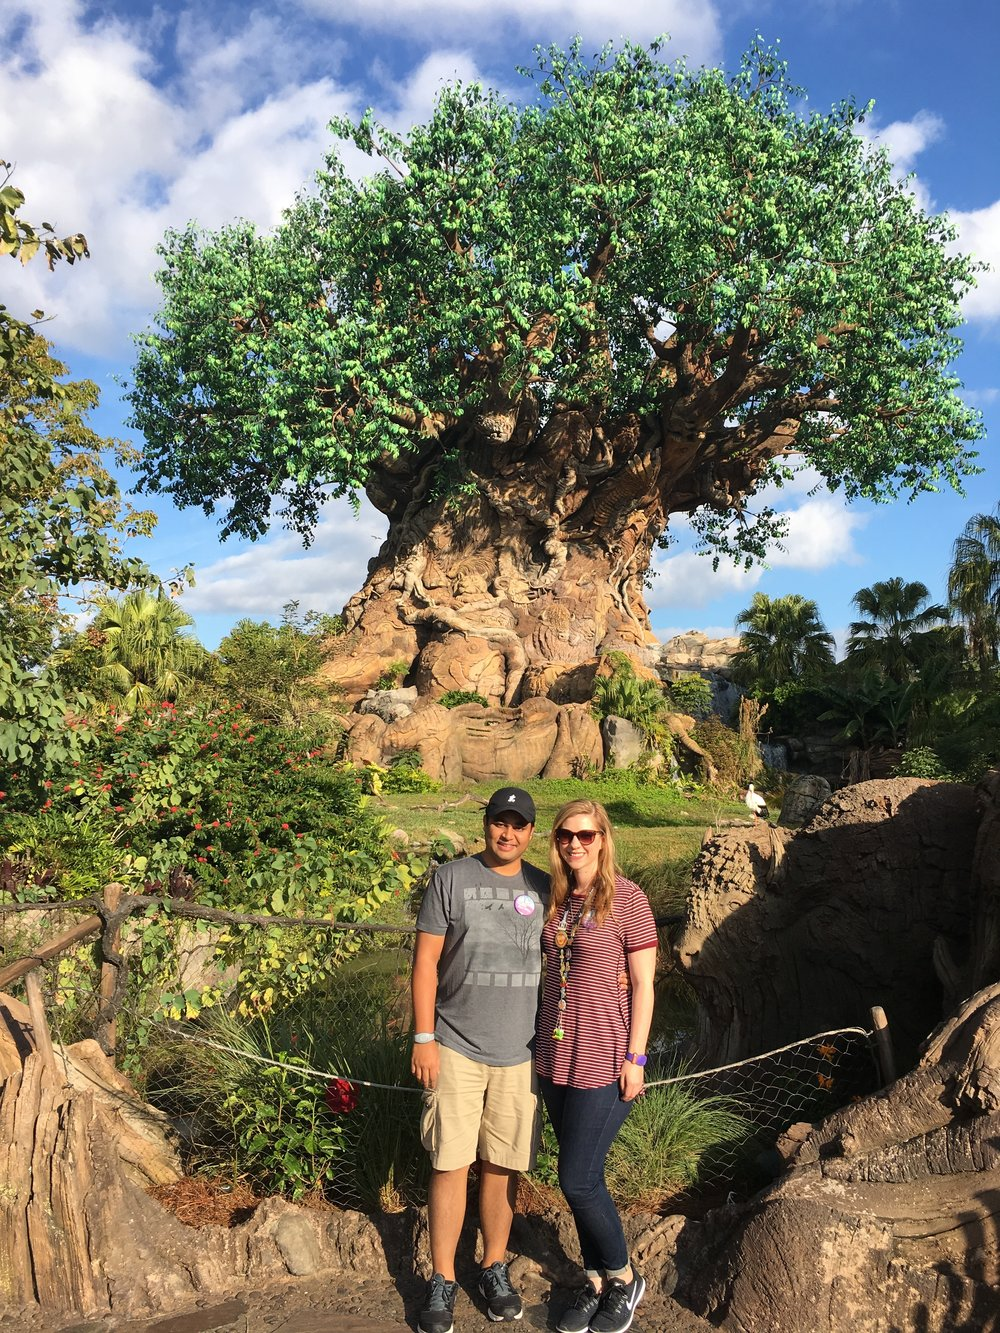 Zach and I in front of the Tree of Life